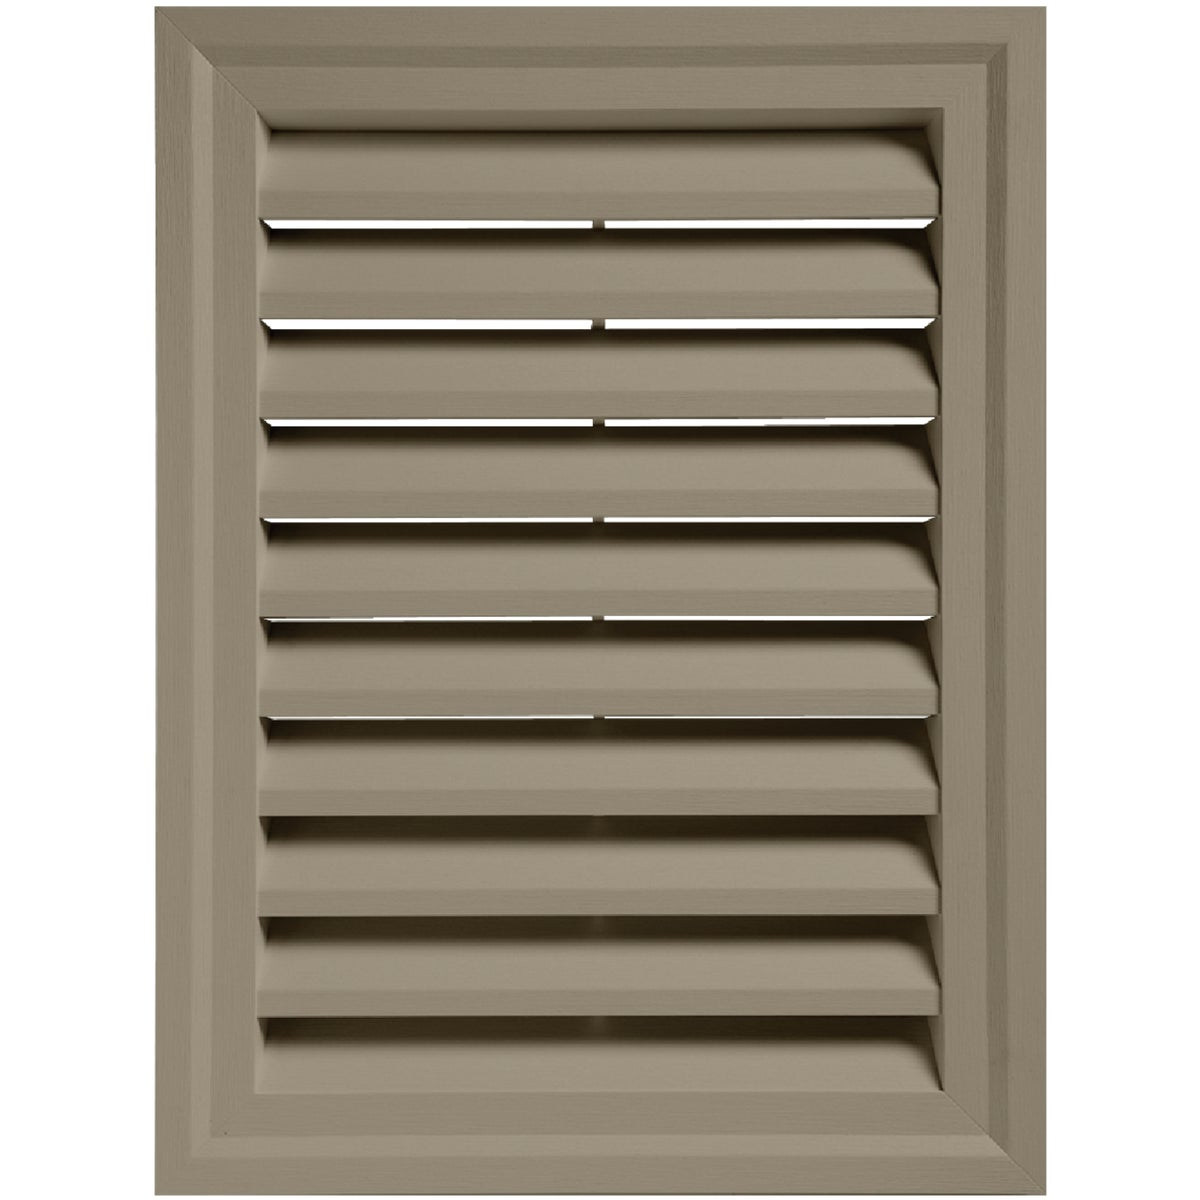 CLAY RECTGLE GABLE VENT - RECTGV1824 PC by Alcoa Home Exteriors